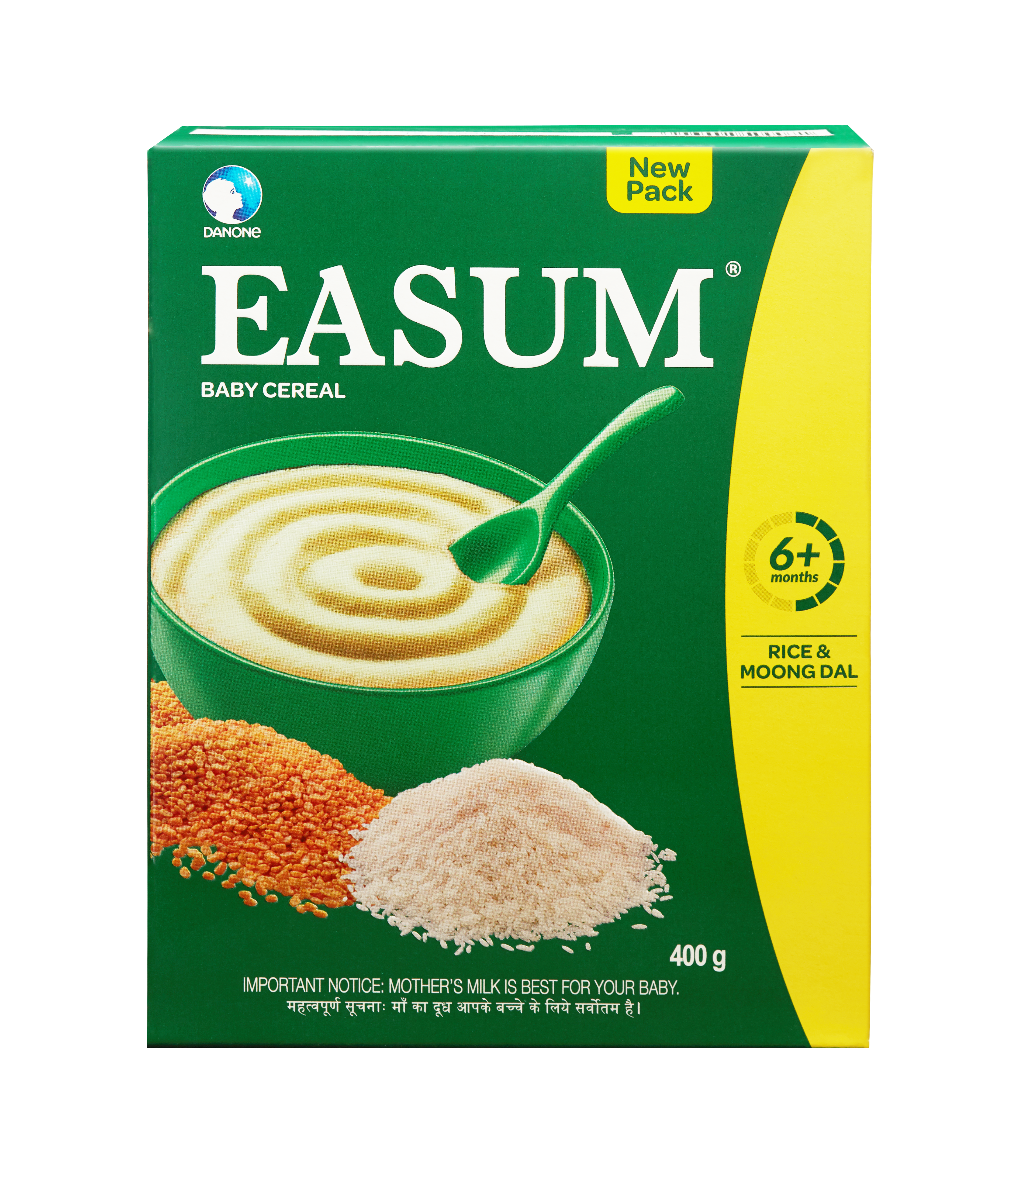 Easum Rice & Moong Dal Baby Cereal, 6 to 24 Months, 400 gm Refill Pack, Pack of 1